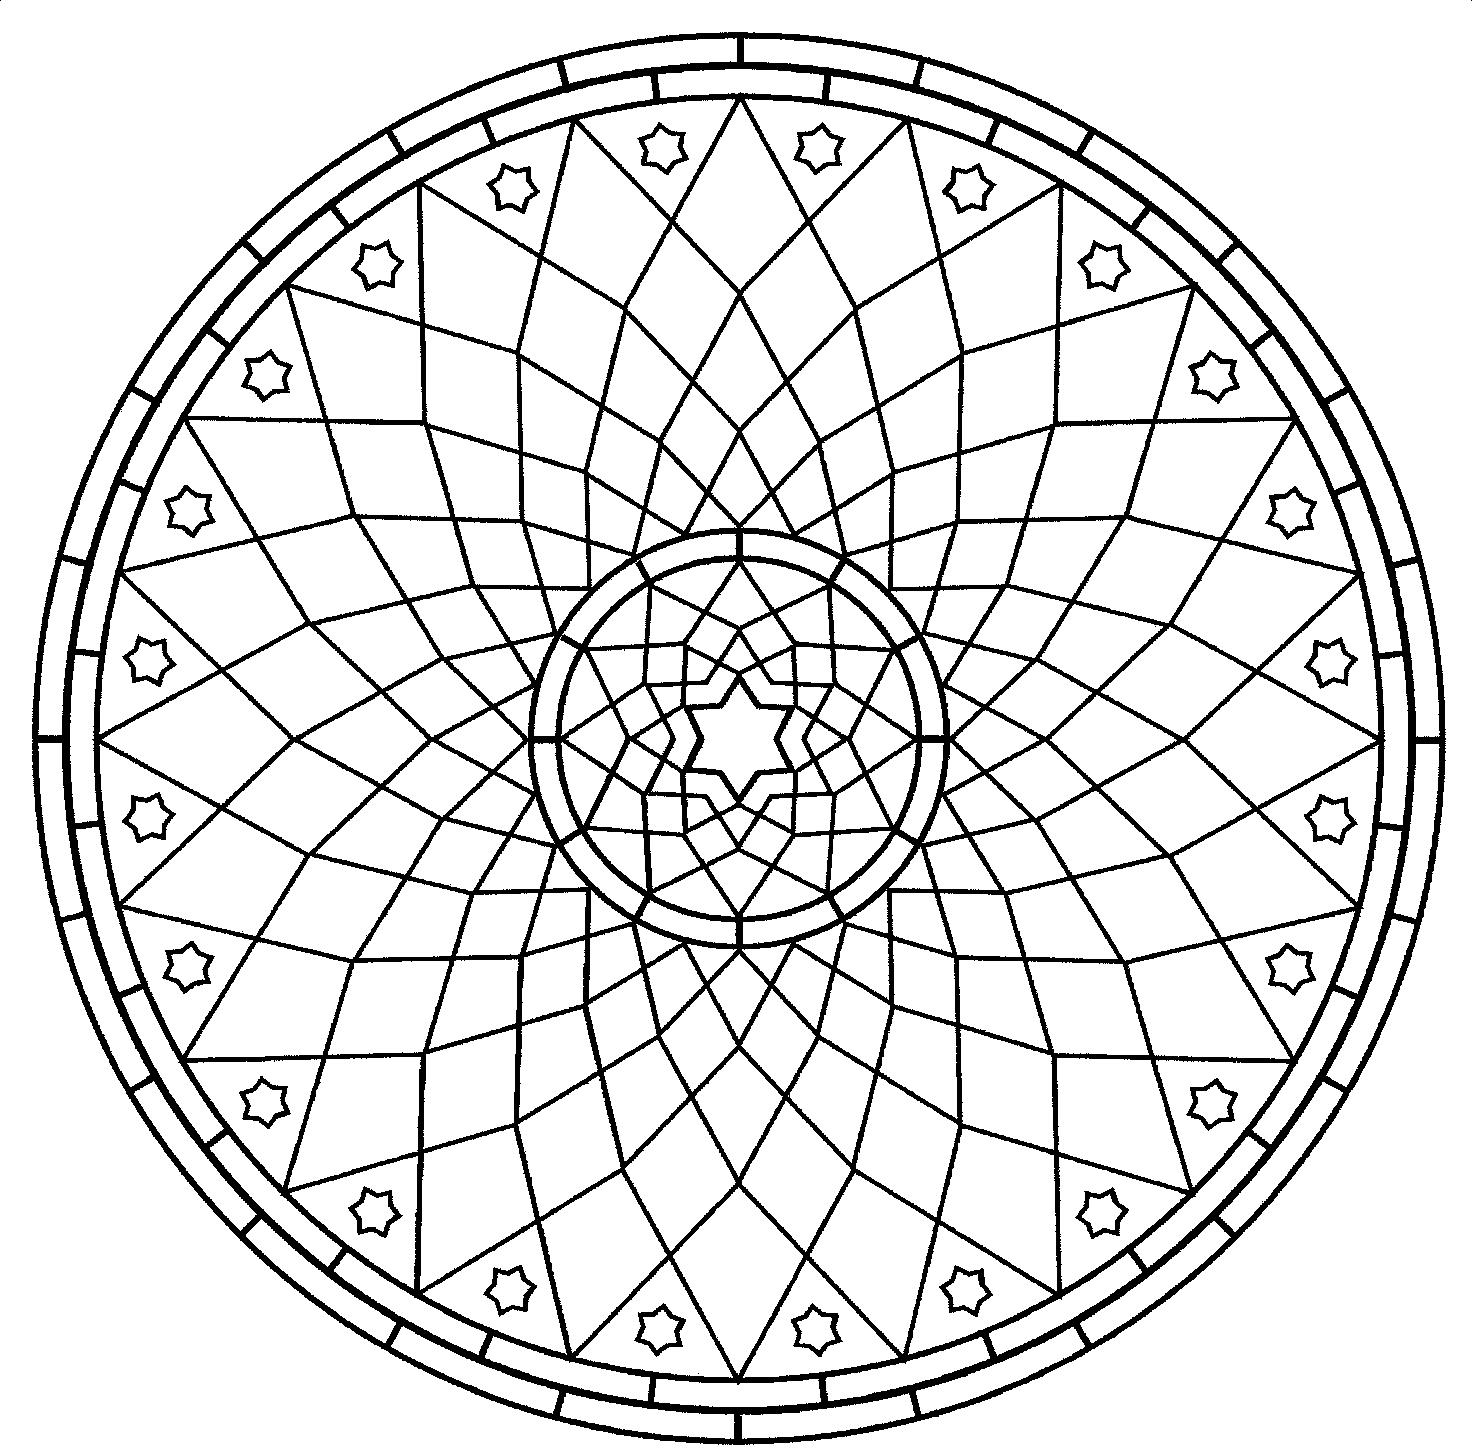 Mandala pages for coloring - Free Mandala Coloring Pages For Kids